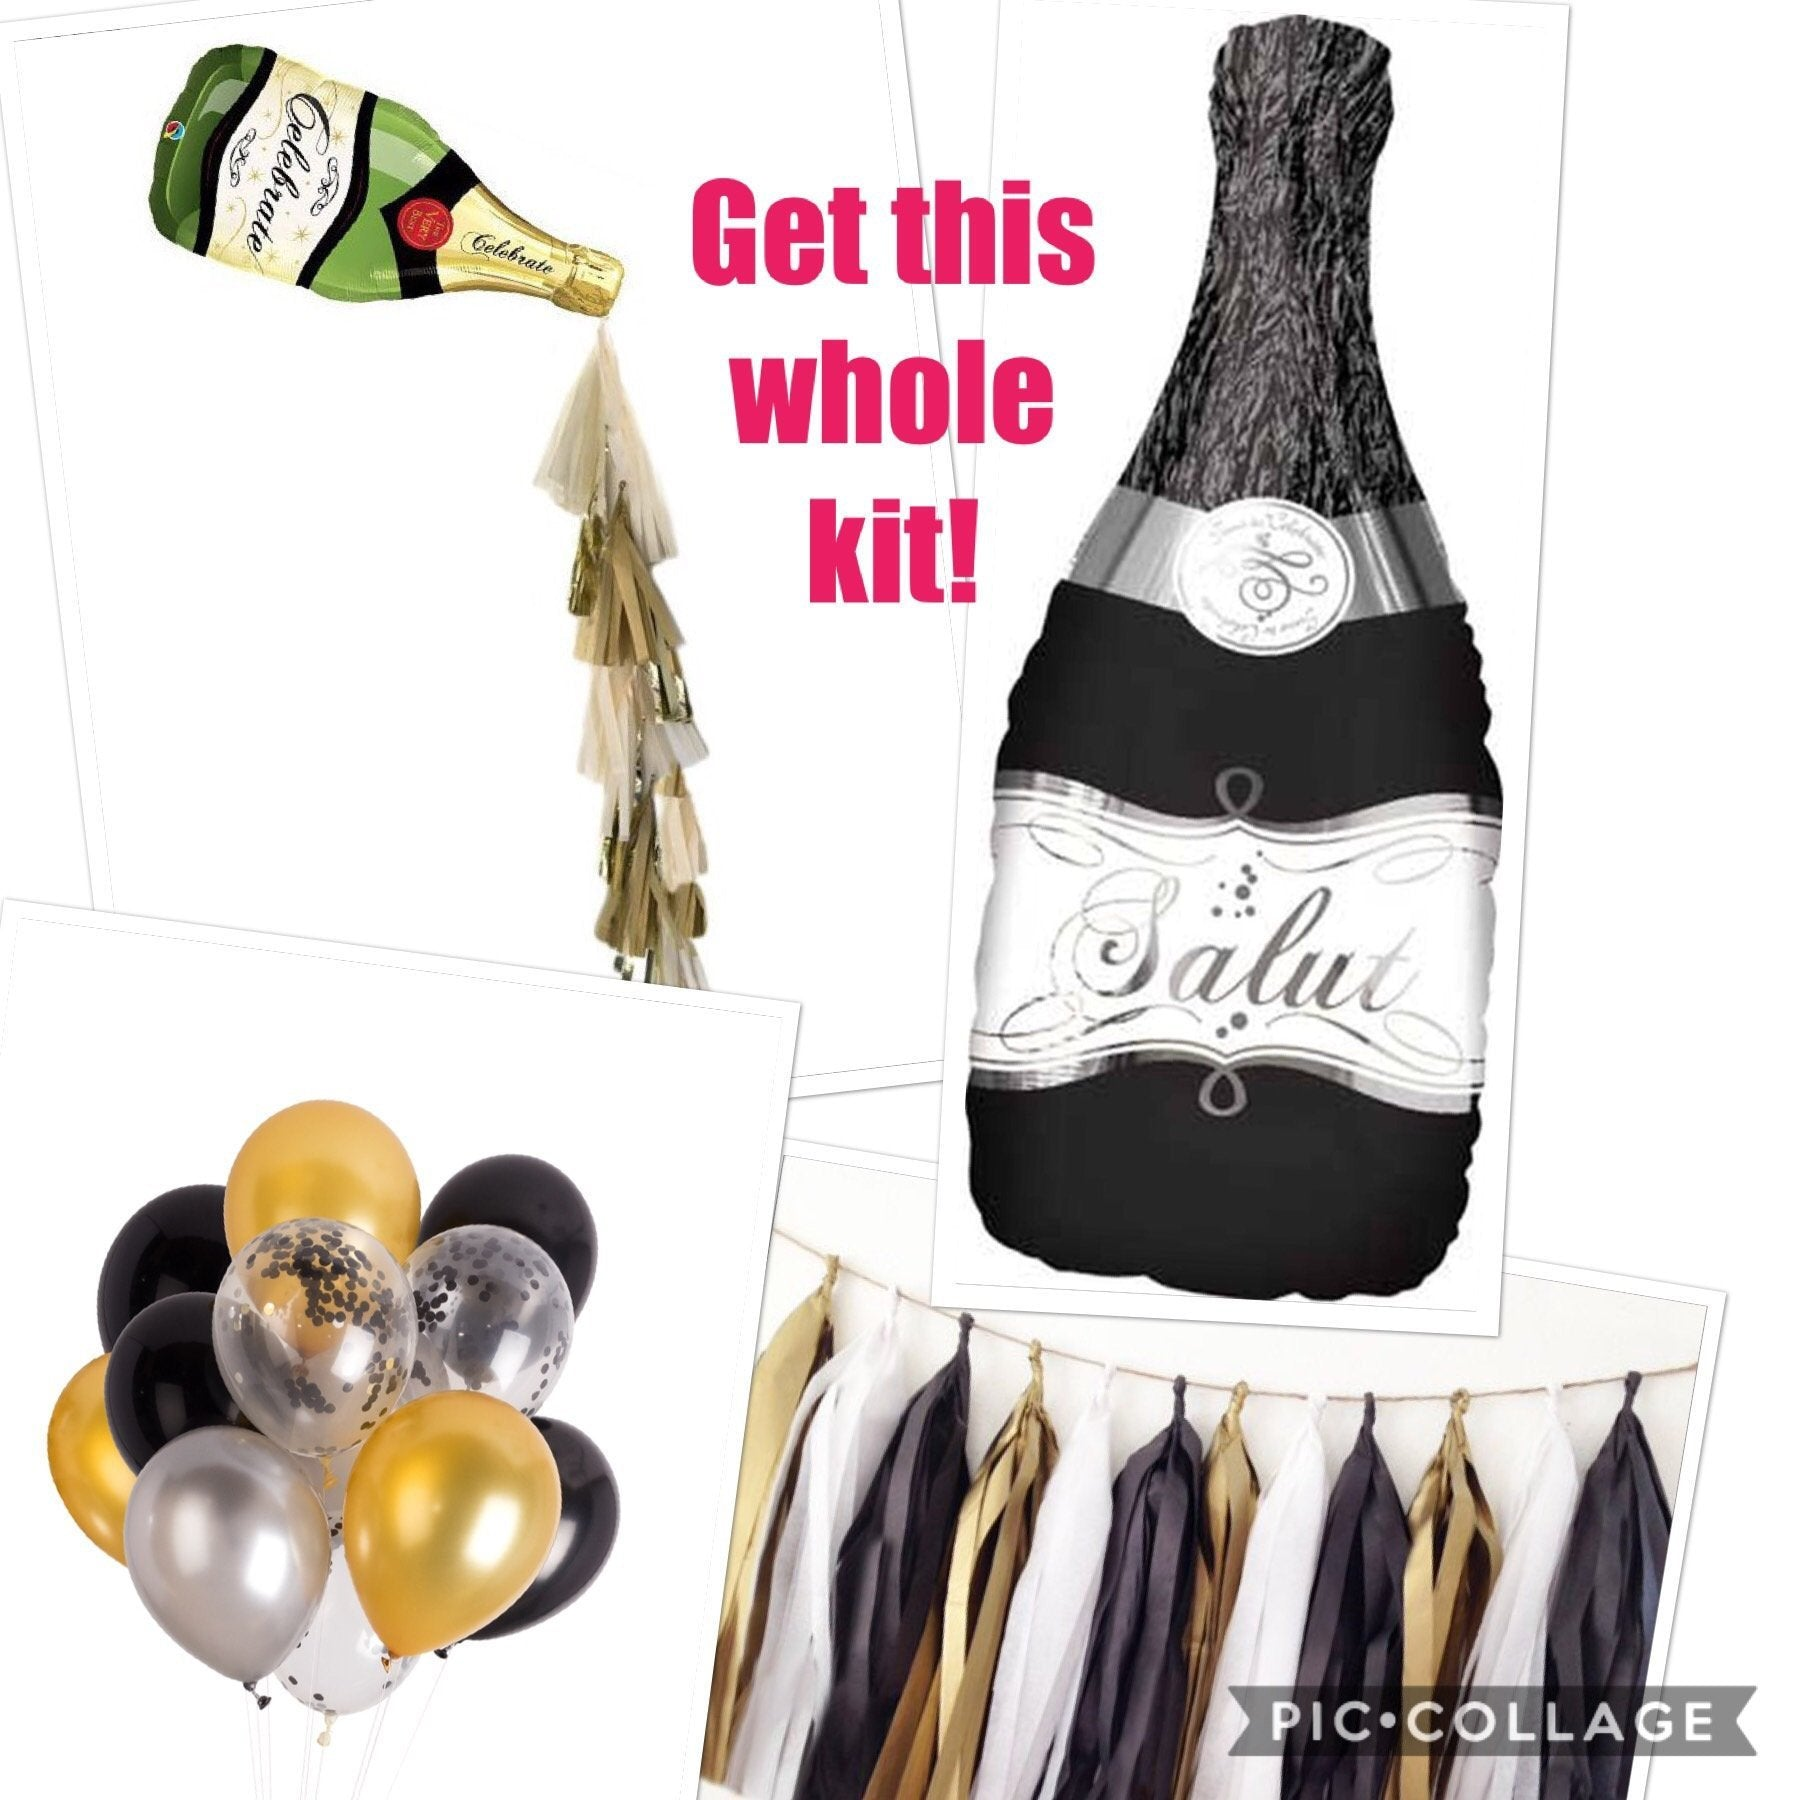 Champagne Bottle Balloon Garland Kit with spout, Bachelorette, Wedding Photo Booth,  Backdrop, New Year's Eve Decor, Wedding Decor, Shower